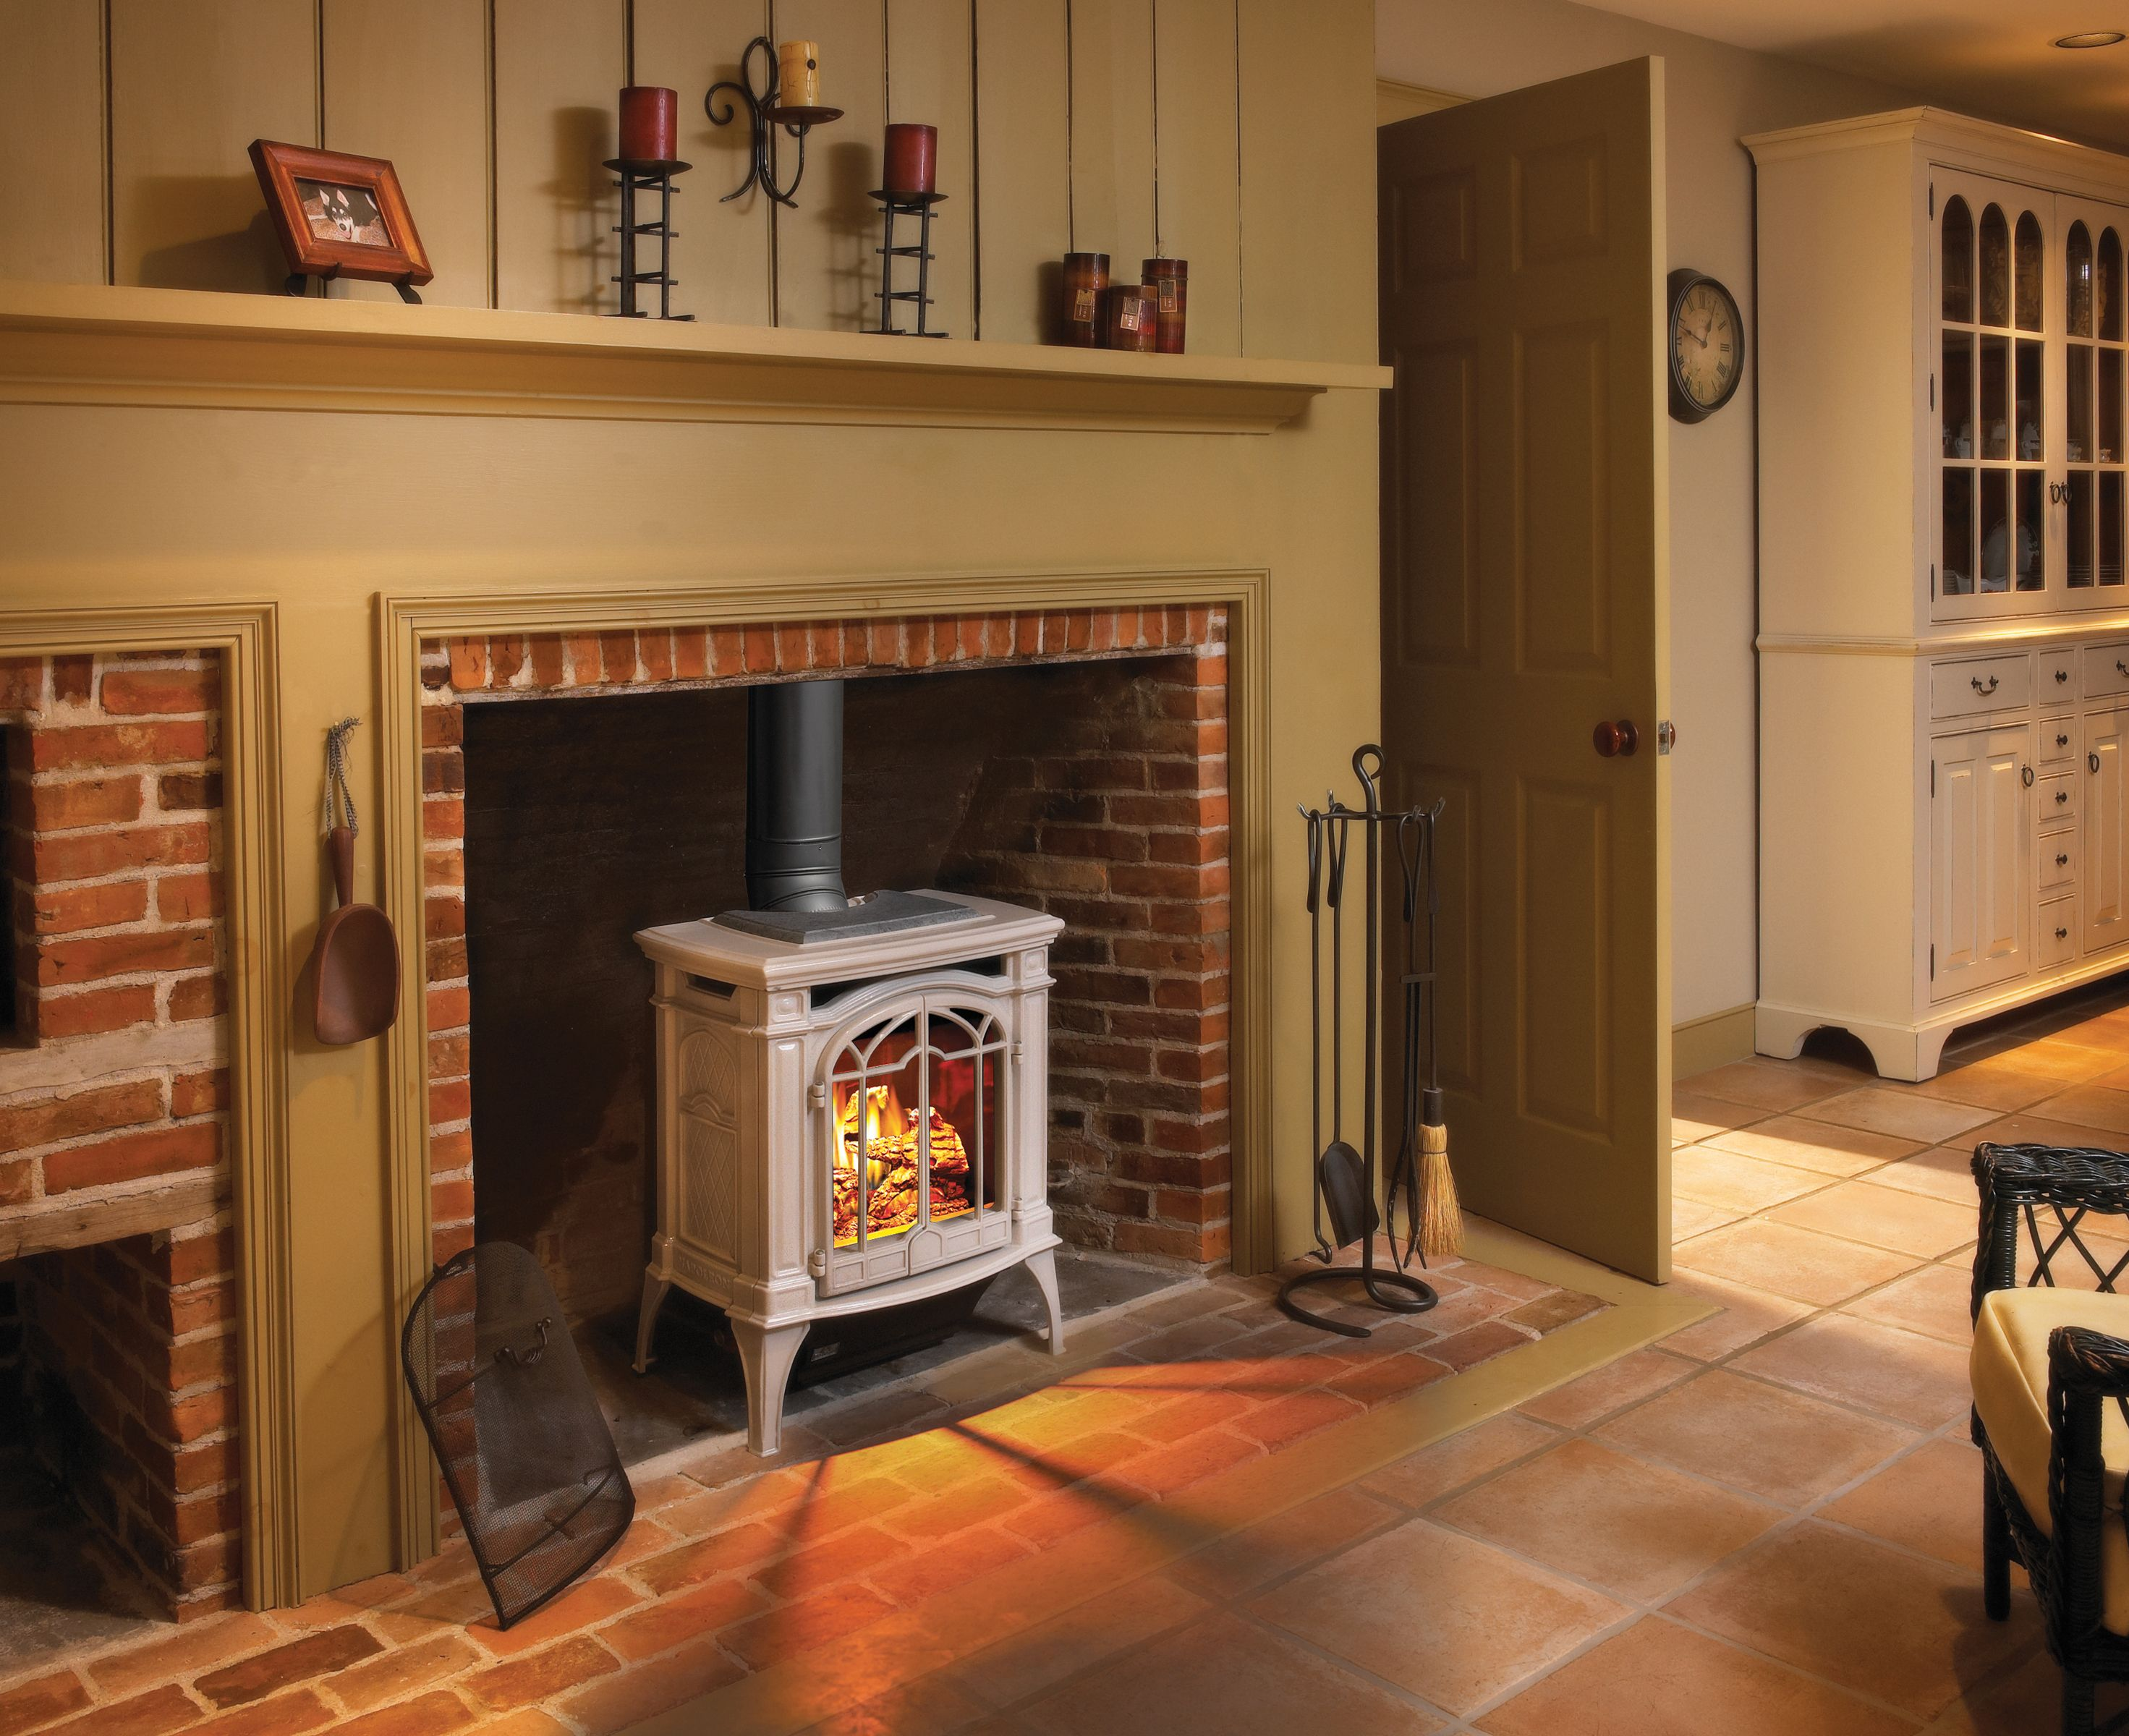 Napoleonus bayfield gds the perfect little gas stove with a ton